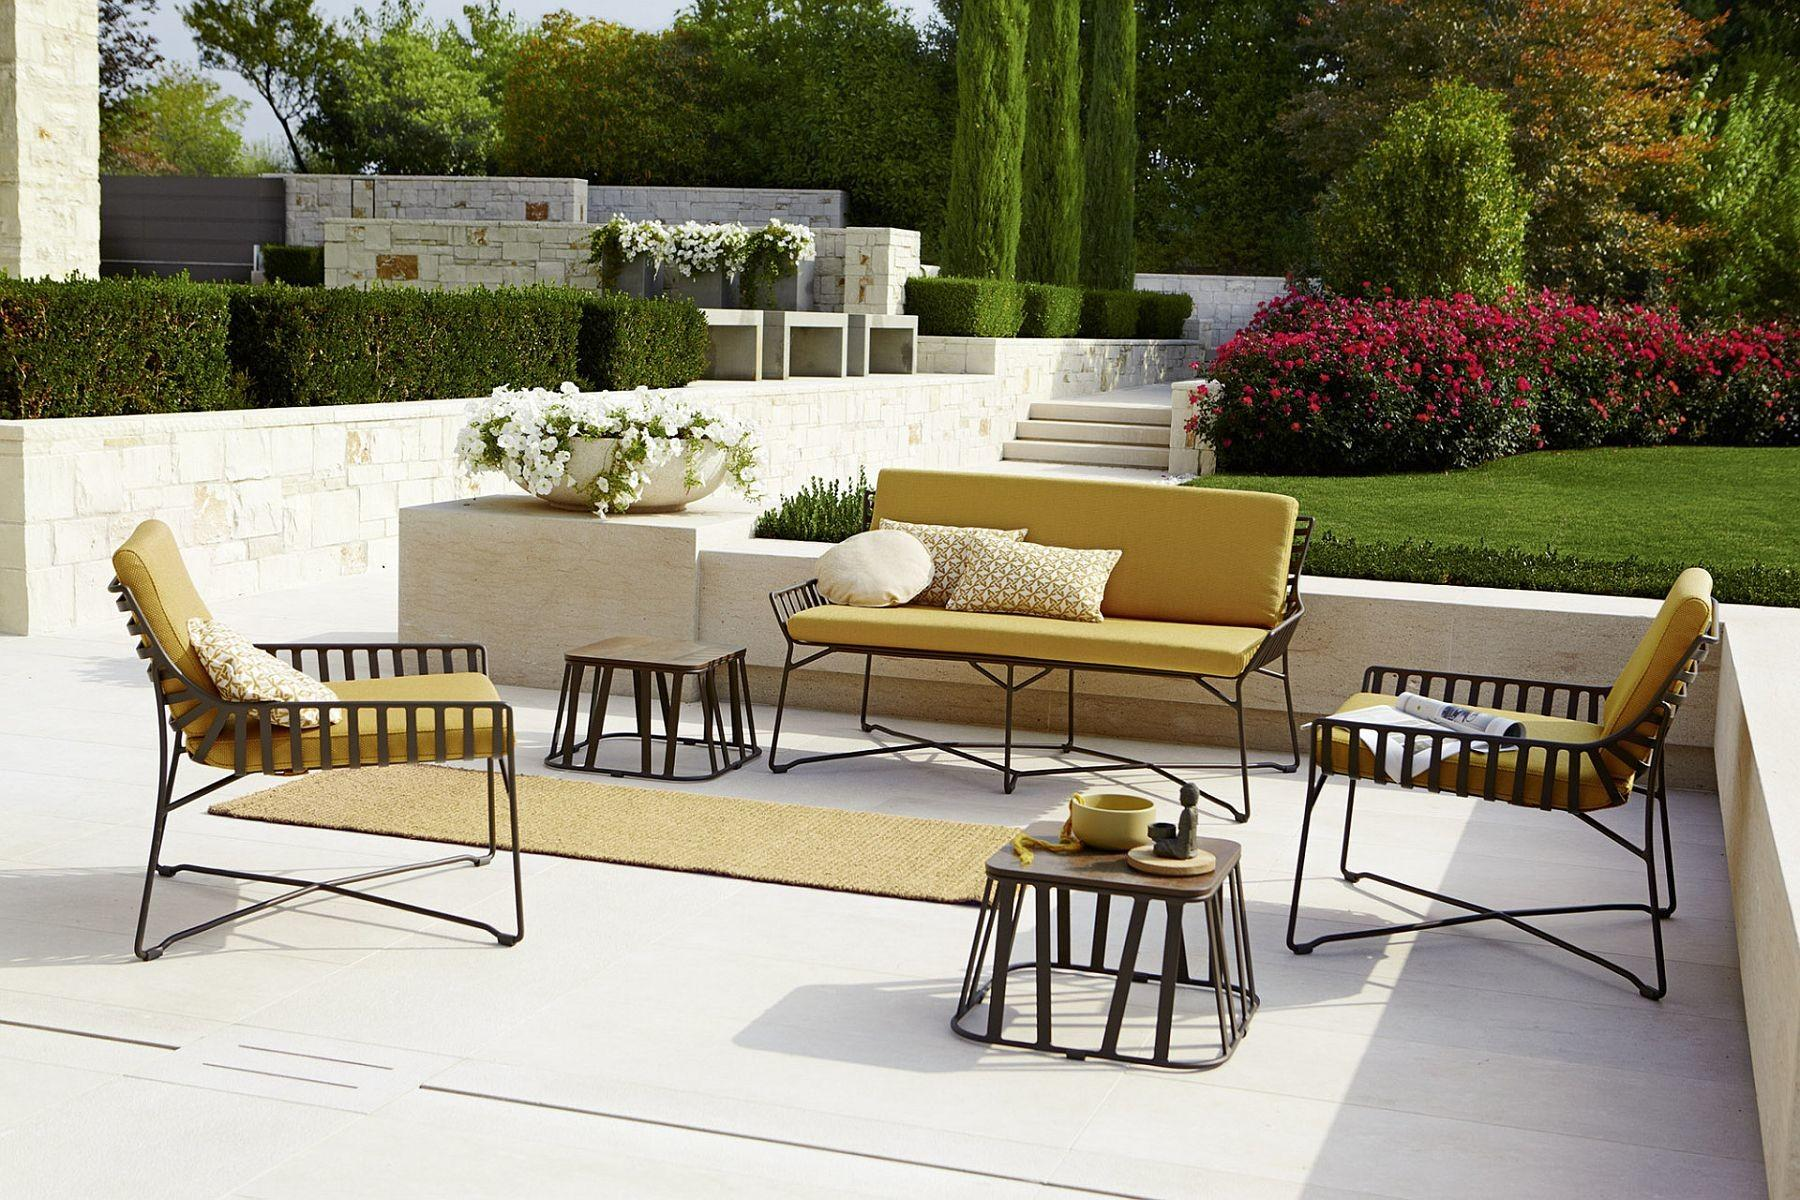 Benign Outdoor Chair Couches Modern Geo